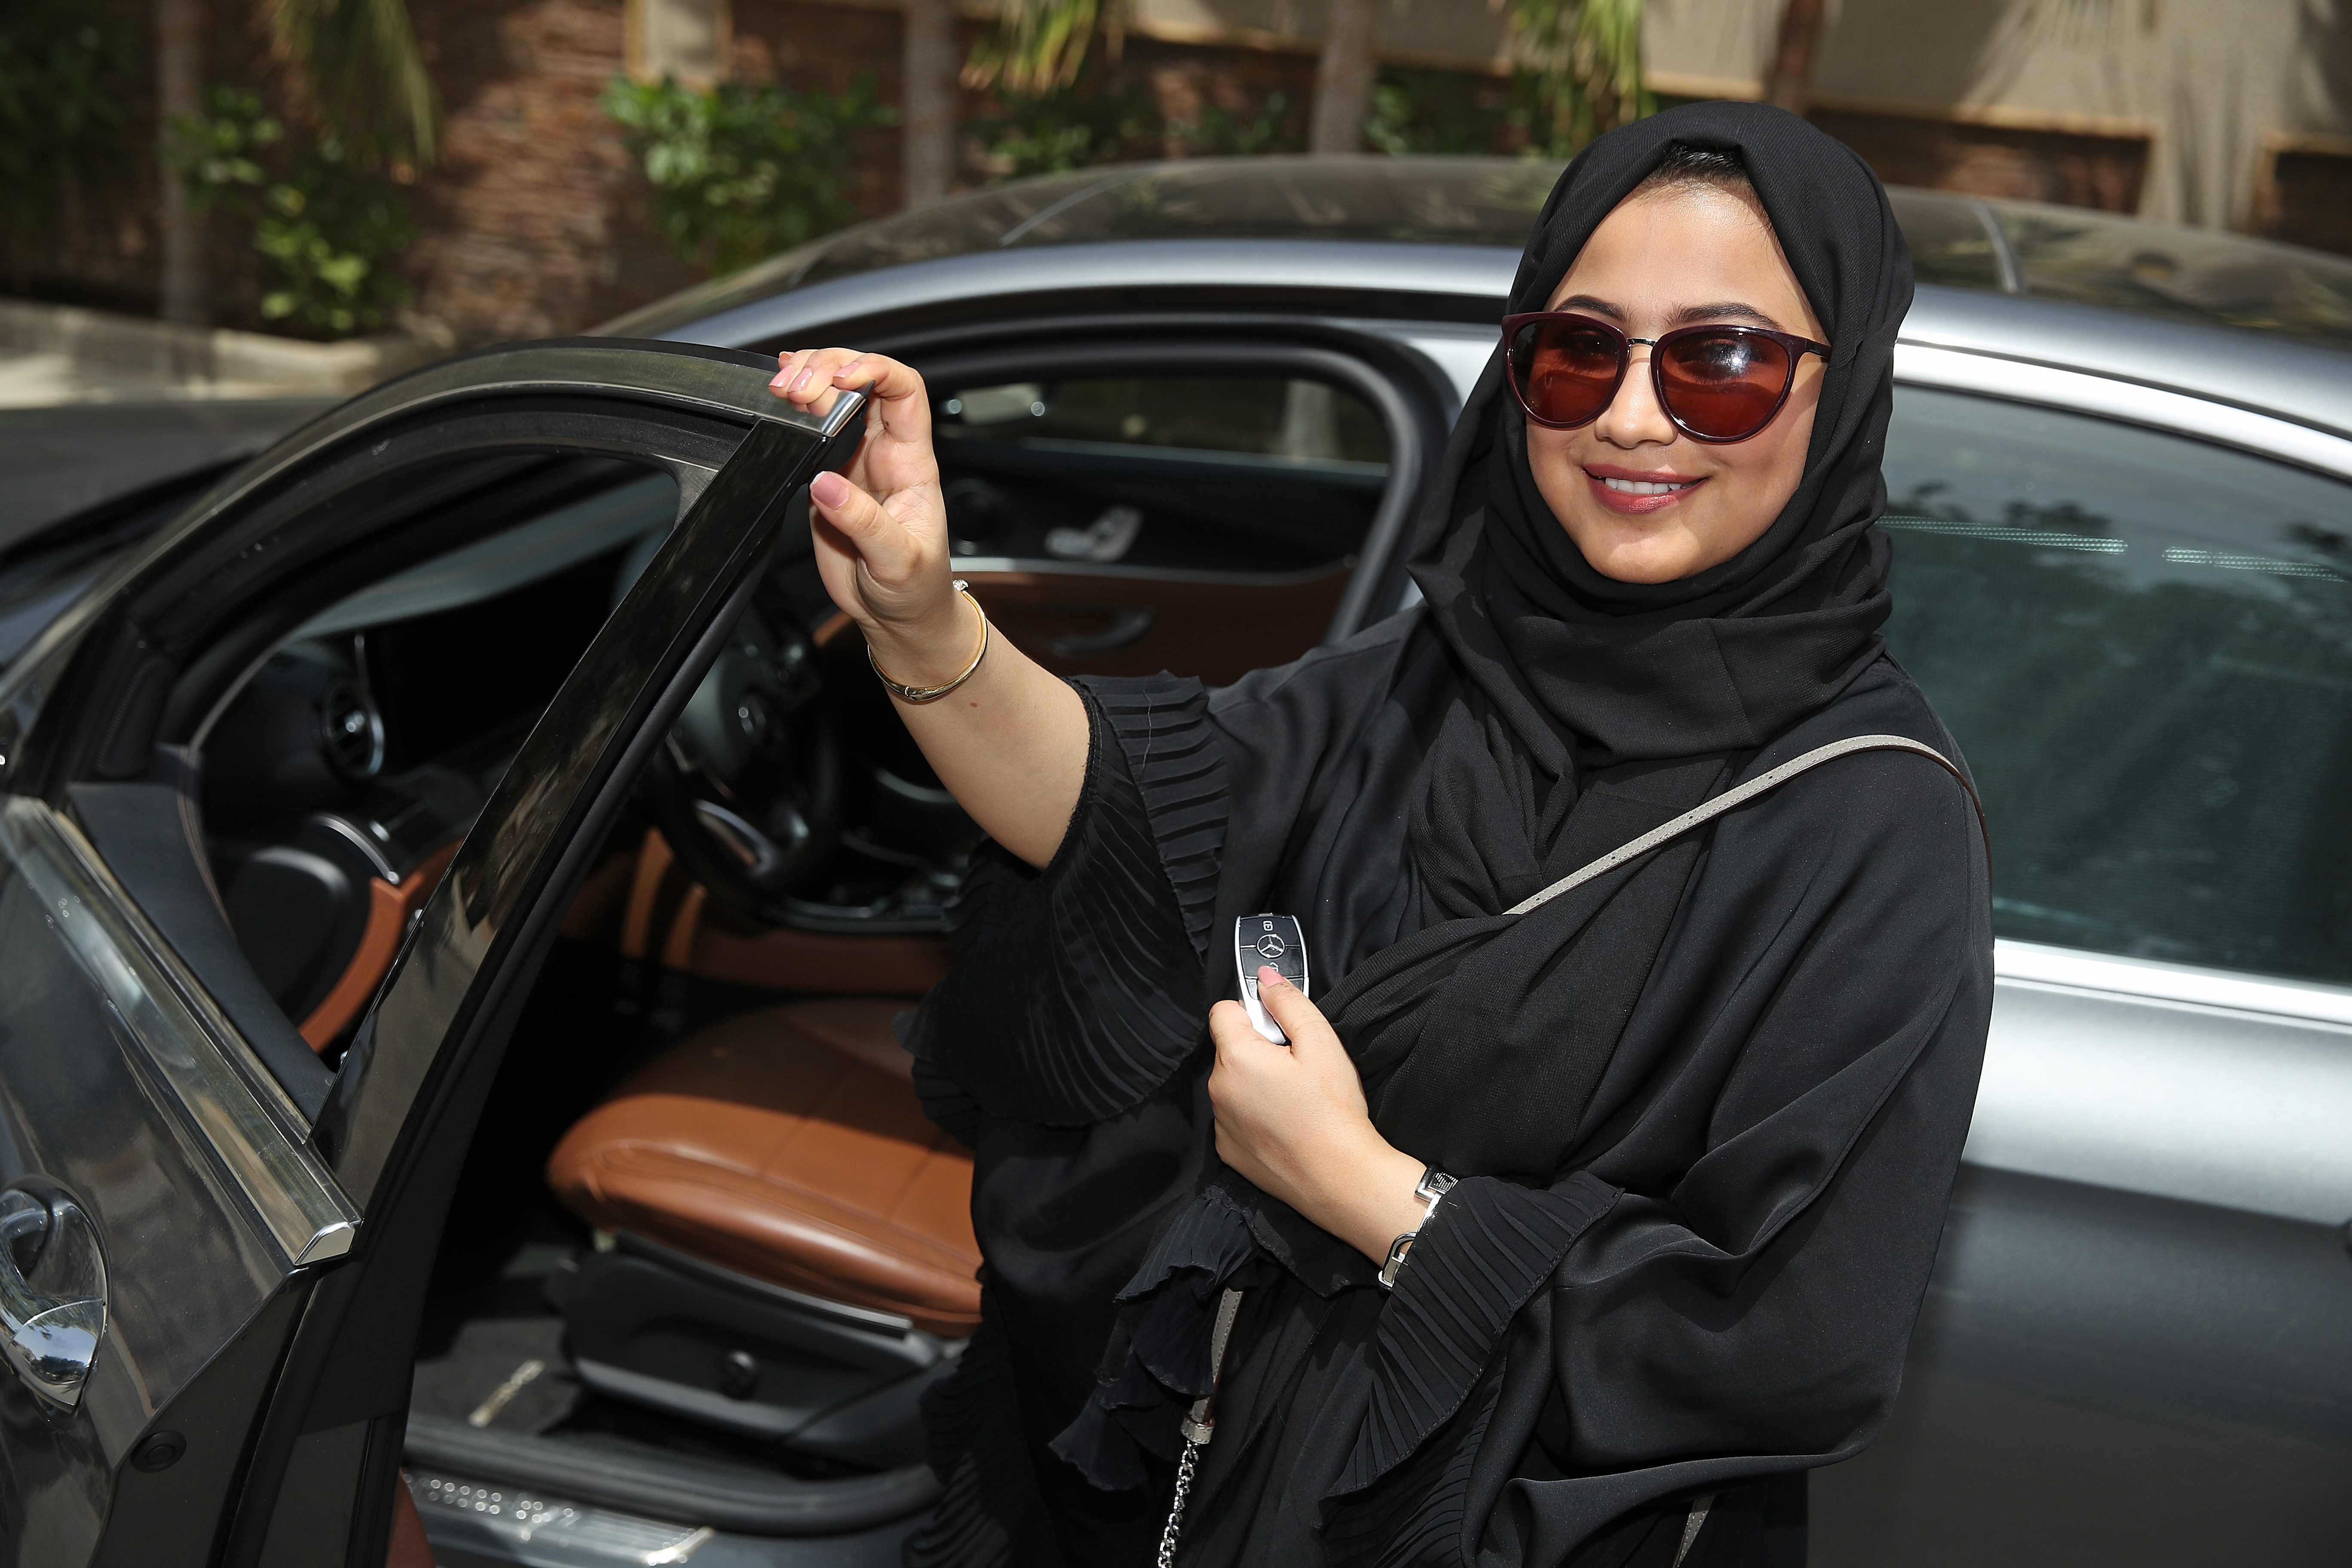 A woman wearing a headscarf stepping into the driver's seat on a car.